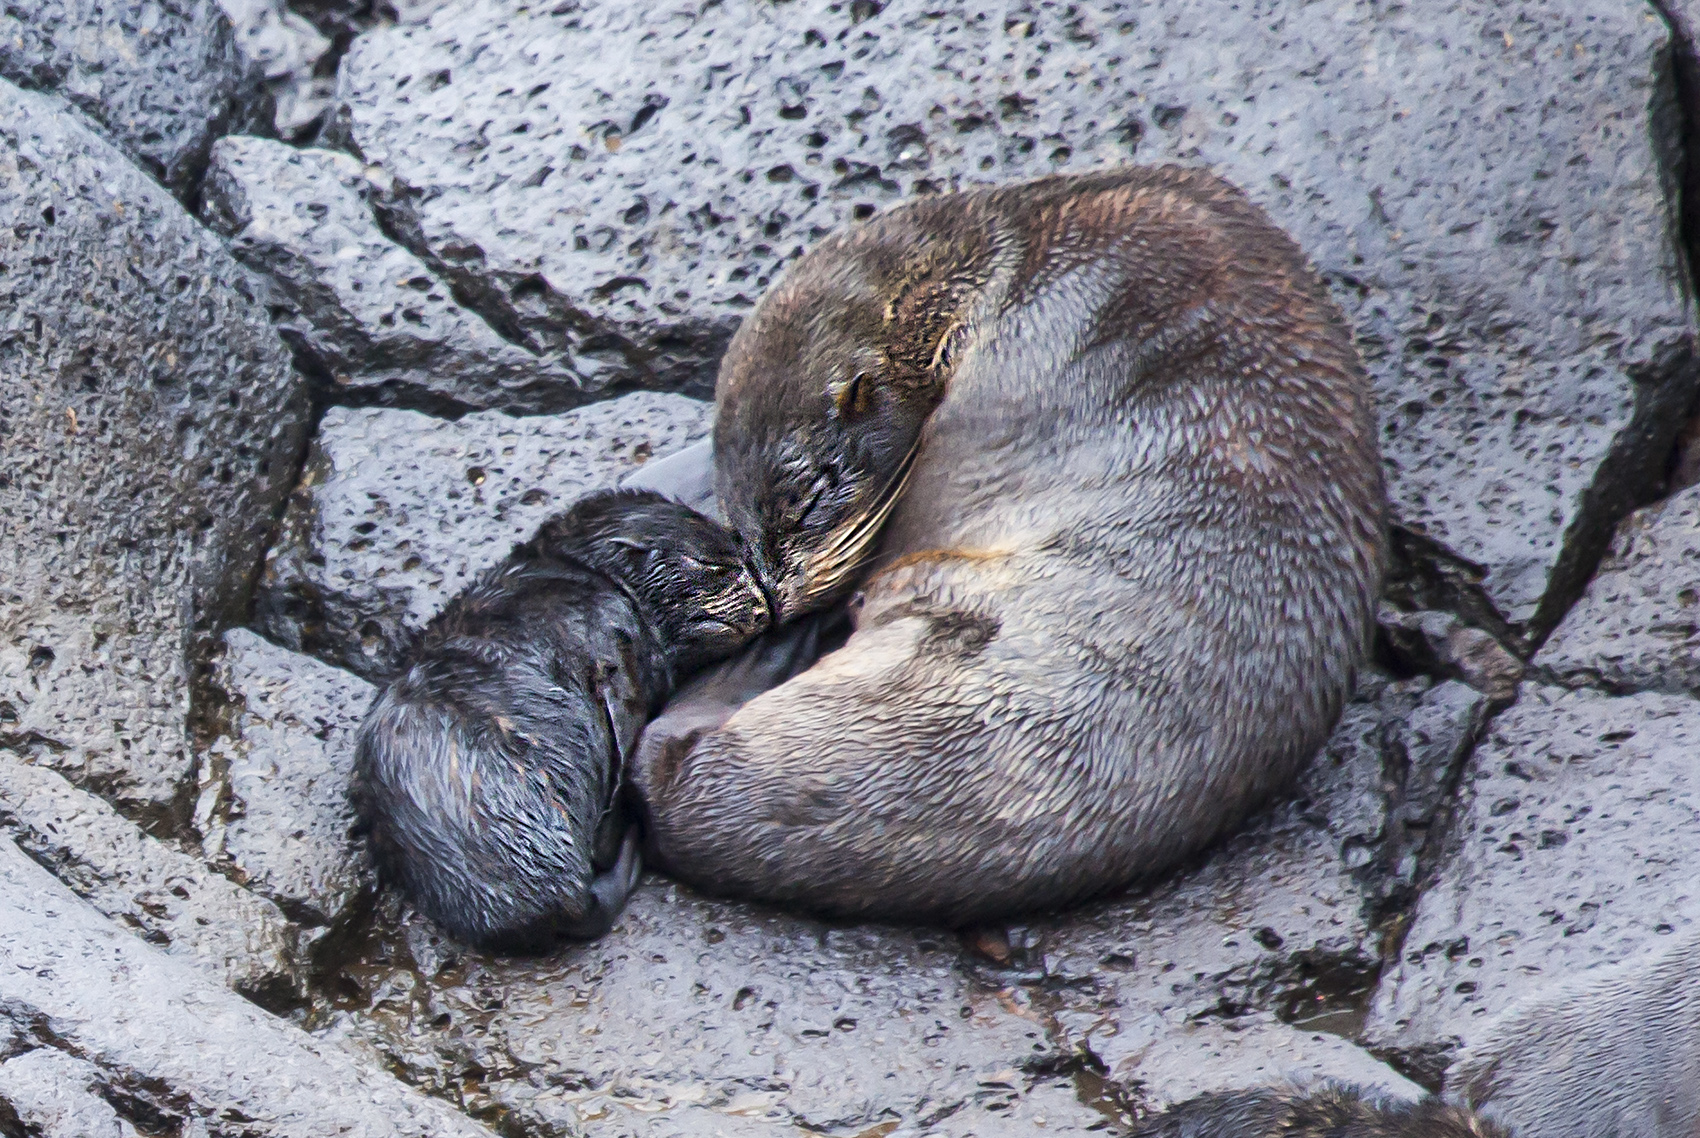 Newborn fur seal pup